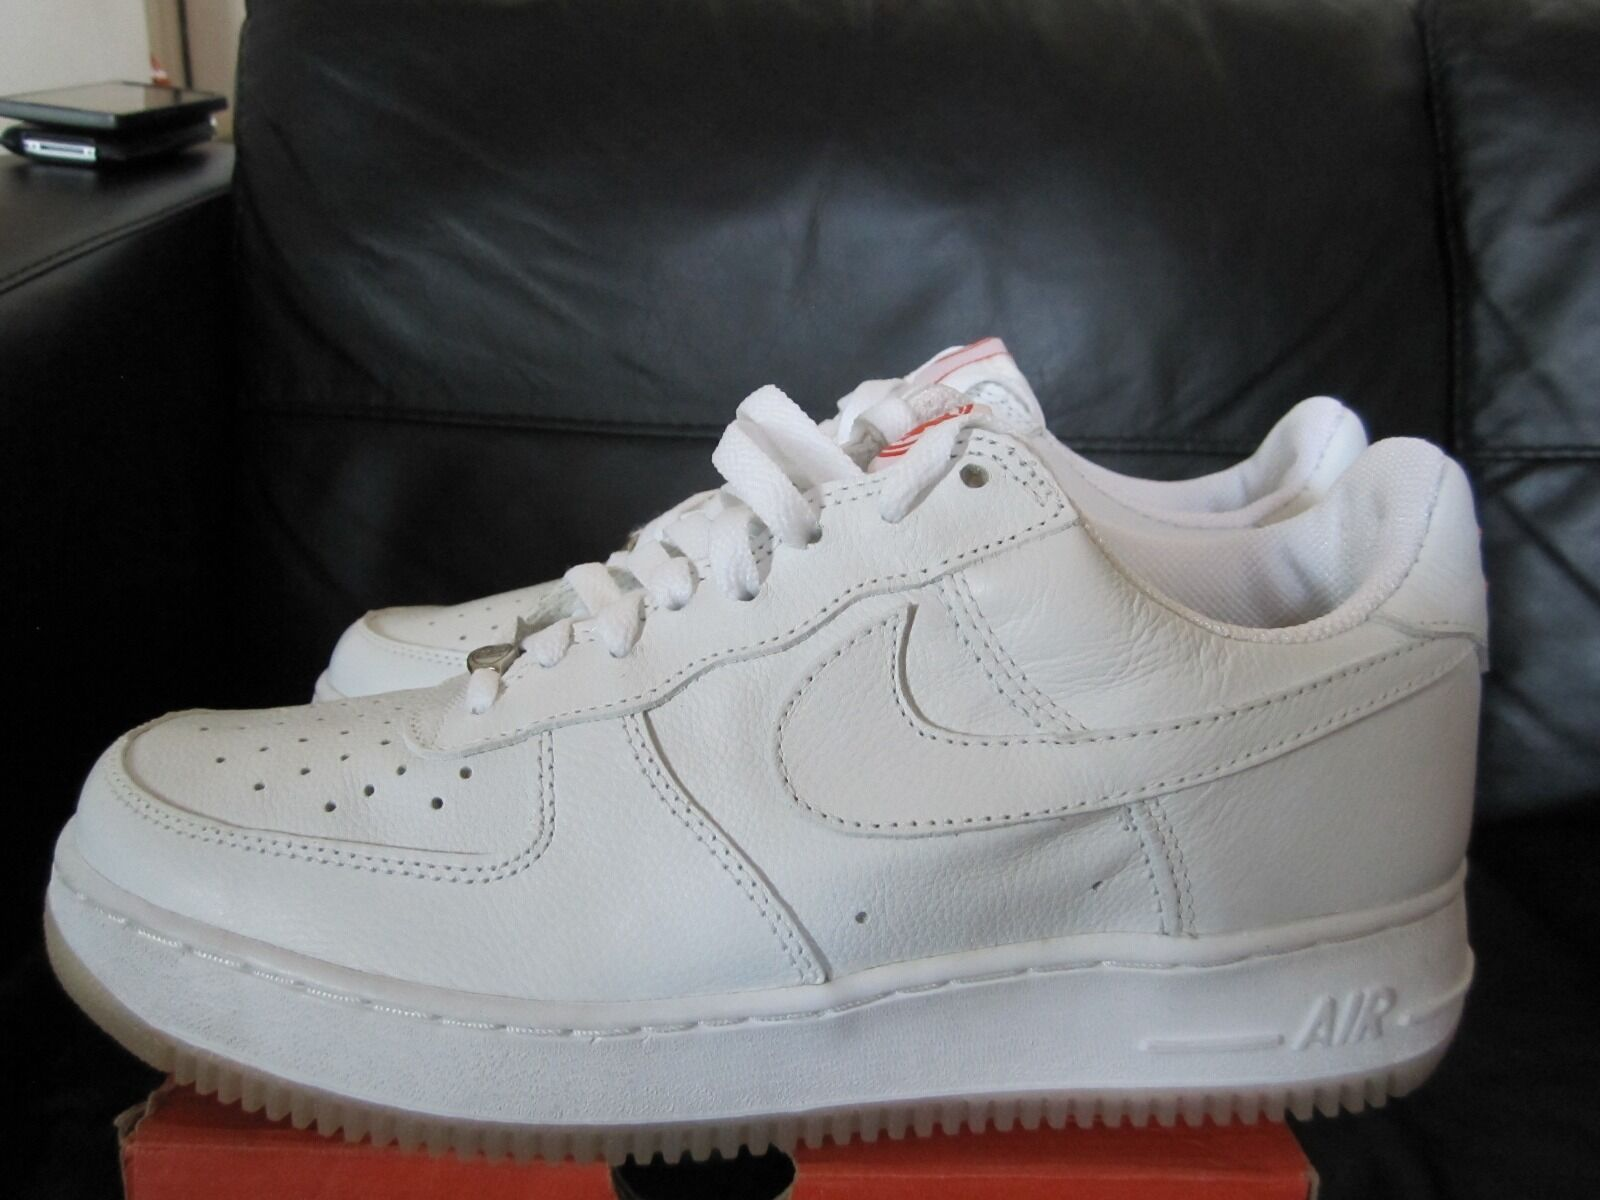 1d67d4a3243d5 Nike Air Force 1 Limited Edition 2003 Year of The Goat New. for sale ...